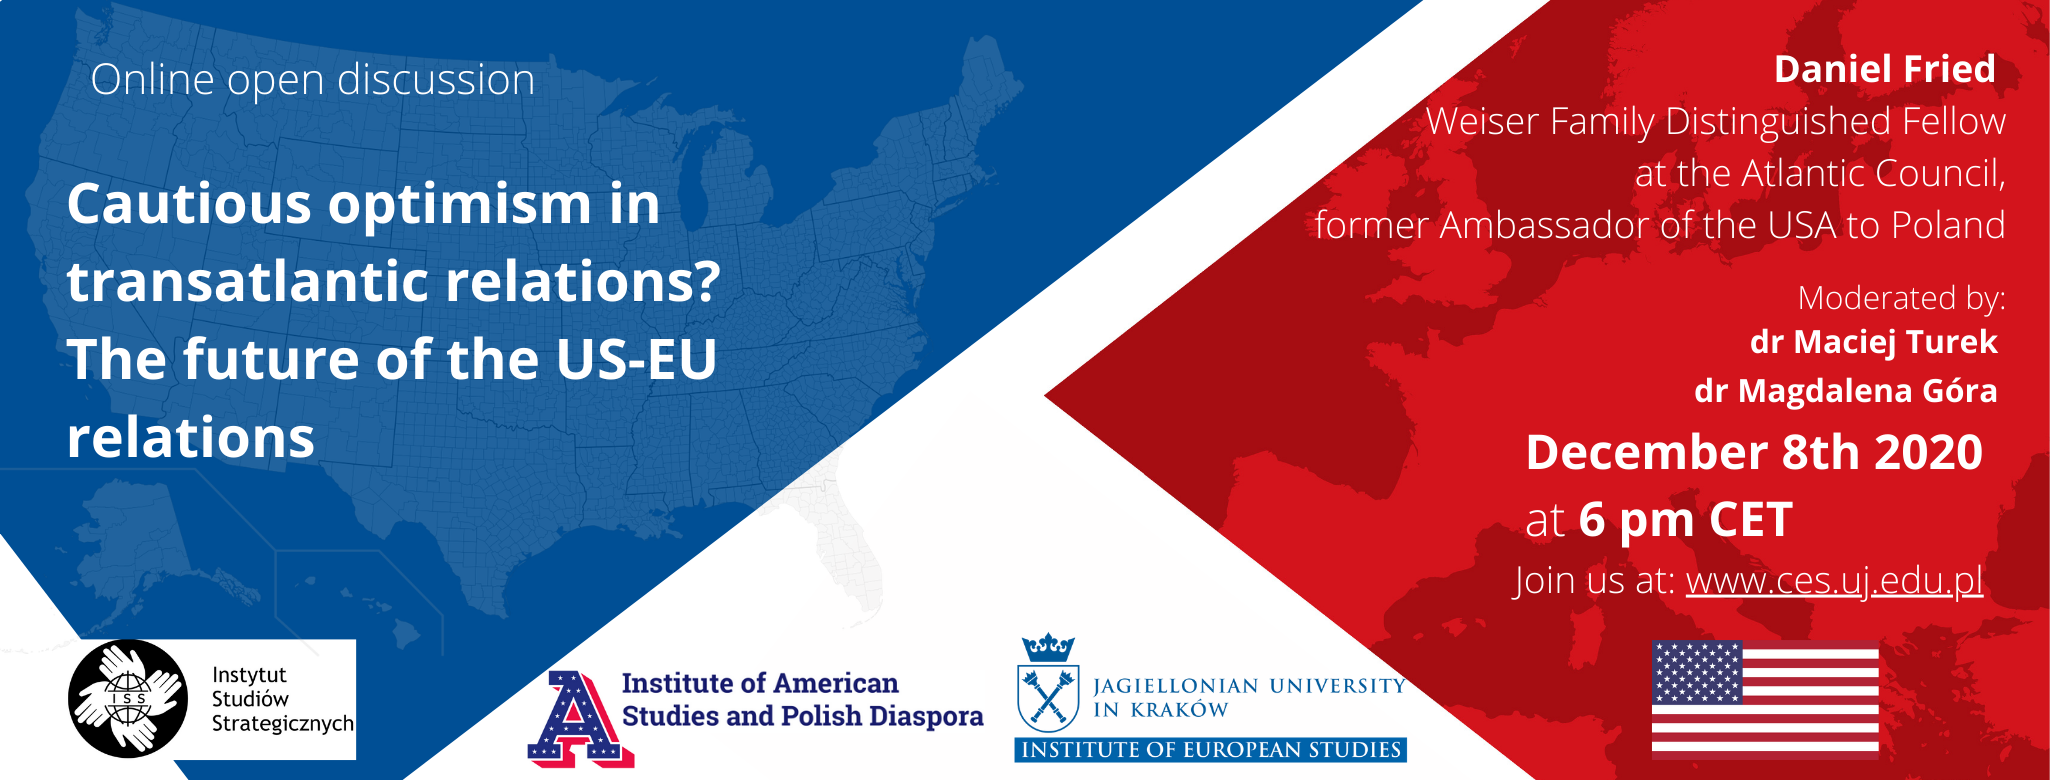 The Institute of European Studies and the Institute of American Studies and Polish Diaspora of the Jagiellonian University invite for an open discussion Cautious optimism in transatlantic relations? The future of the US-EU relations with Ambassador Daniel Fried, Weiser Family Distinguished Fellow at the Atlantic Council, former Ambassador of the USA to Poland.